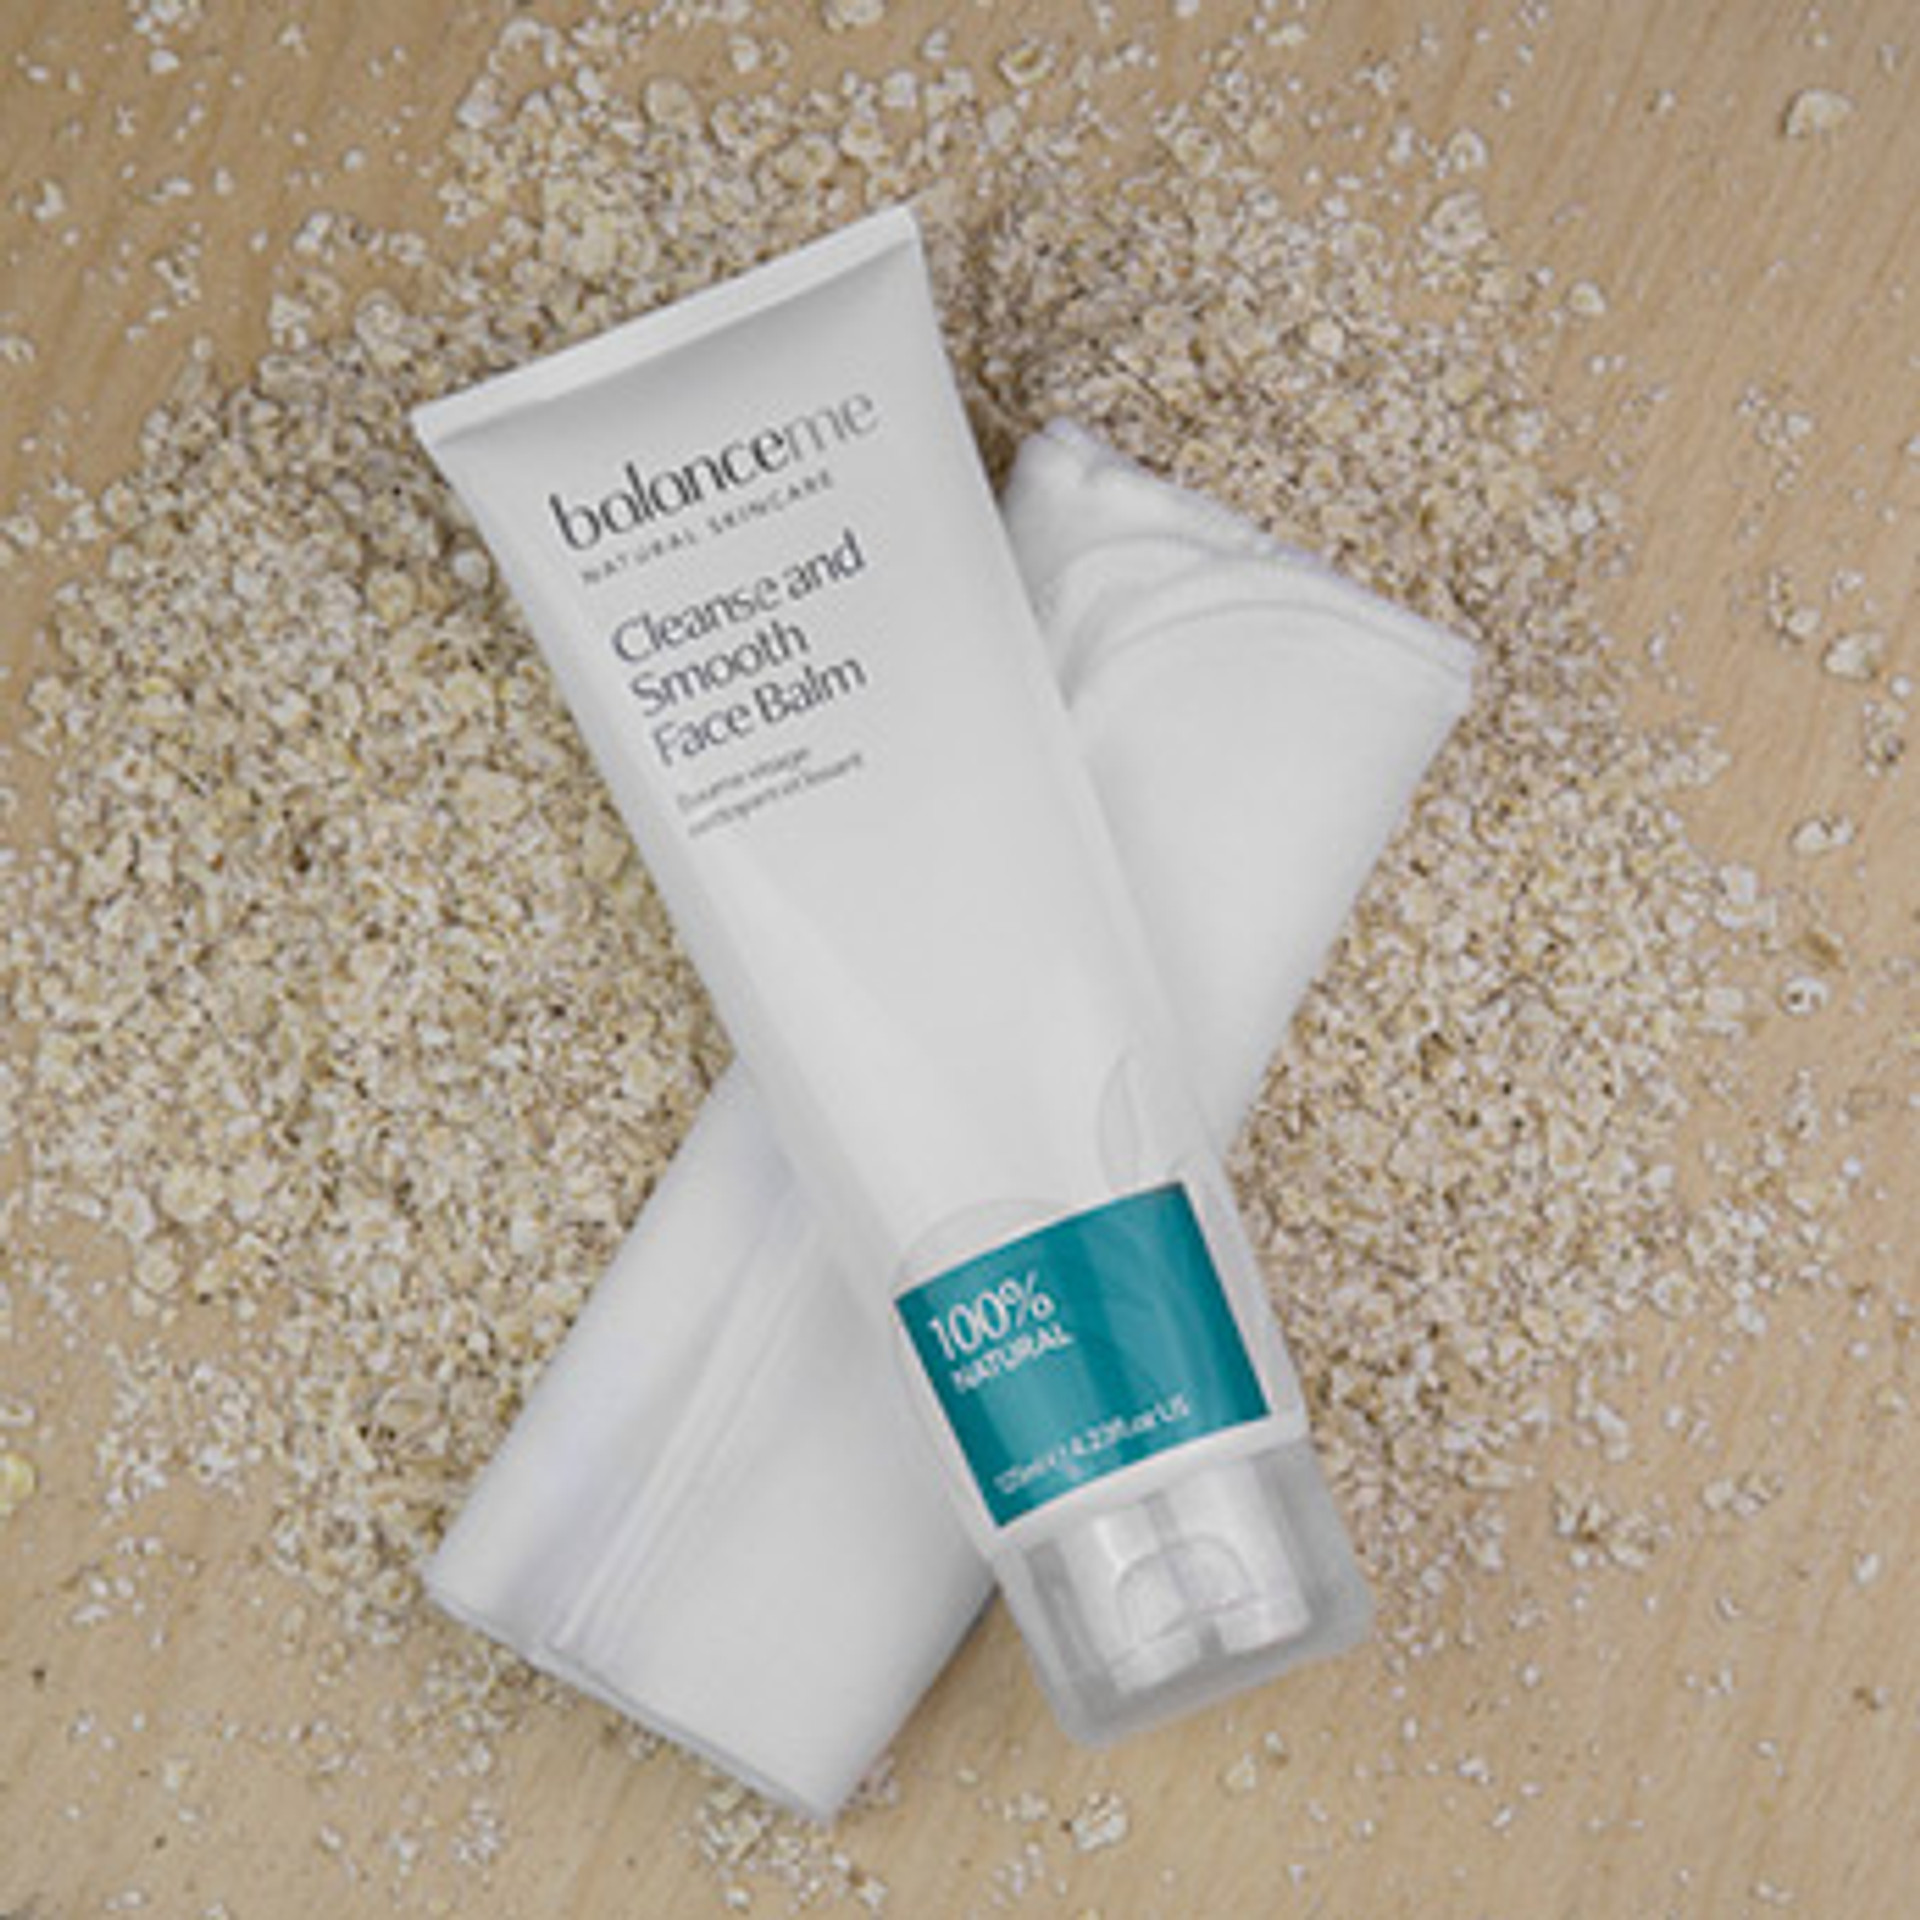 Spotlight on Exfoliation and Oat Powder